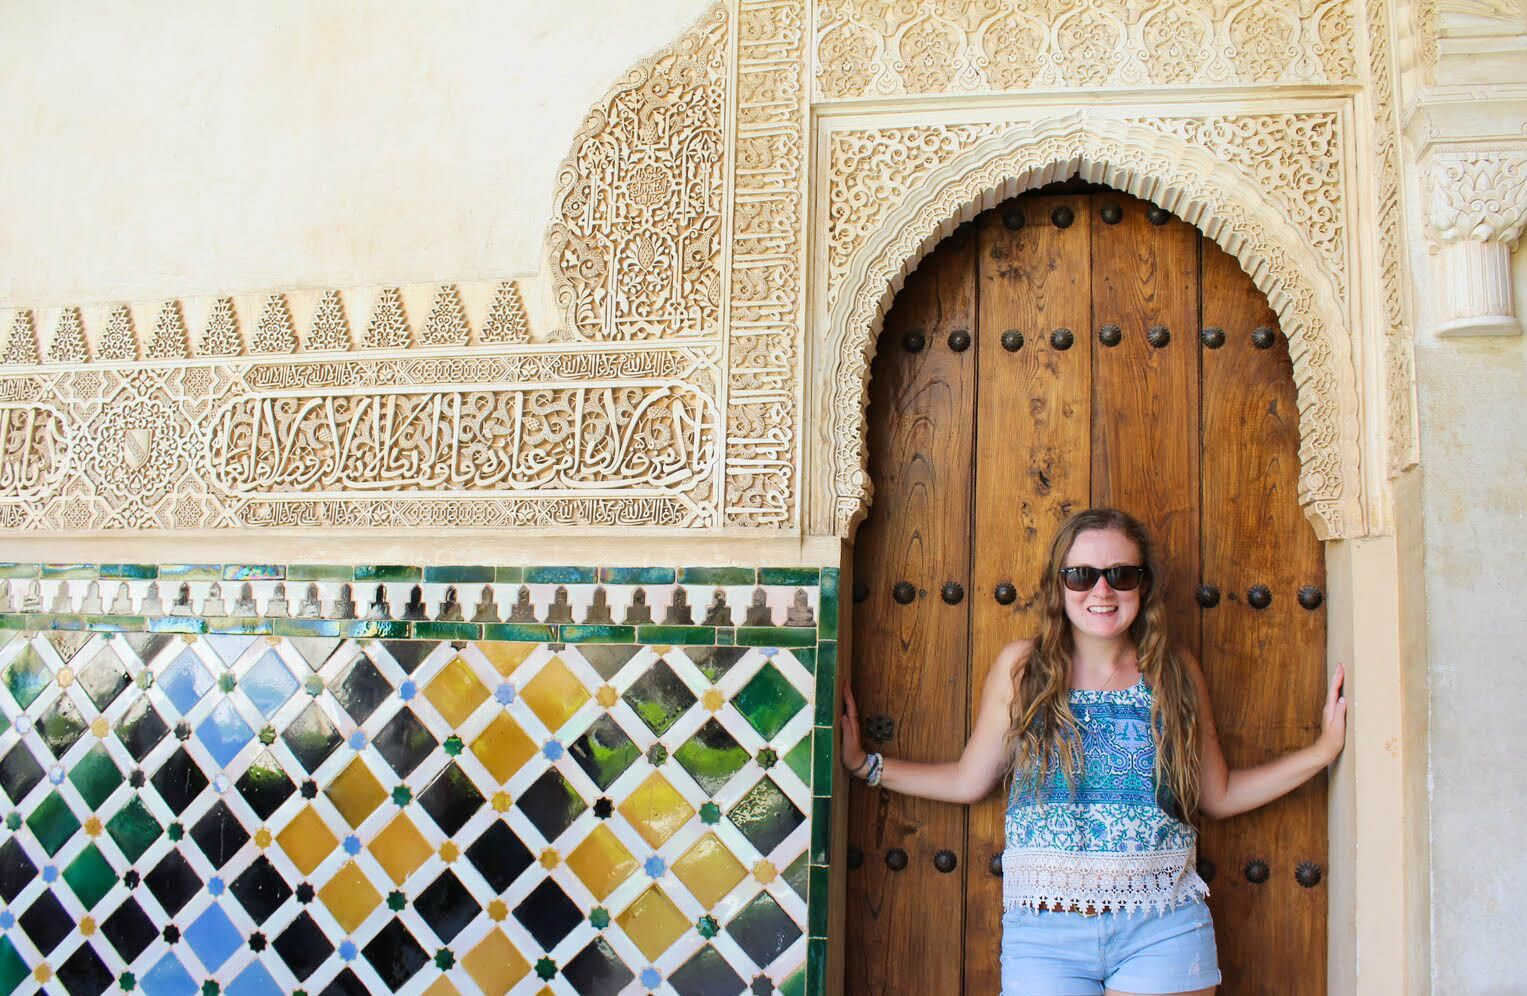 Summer Program - Adventure/Trips | Travel For Teens: Europe for Older Teens - Spain, Portugal and Morocco